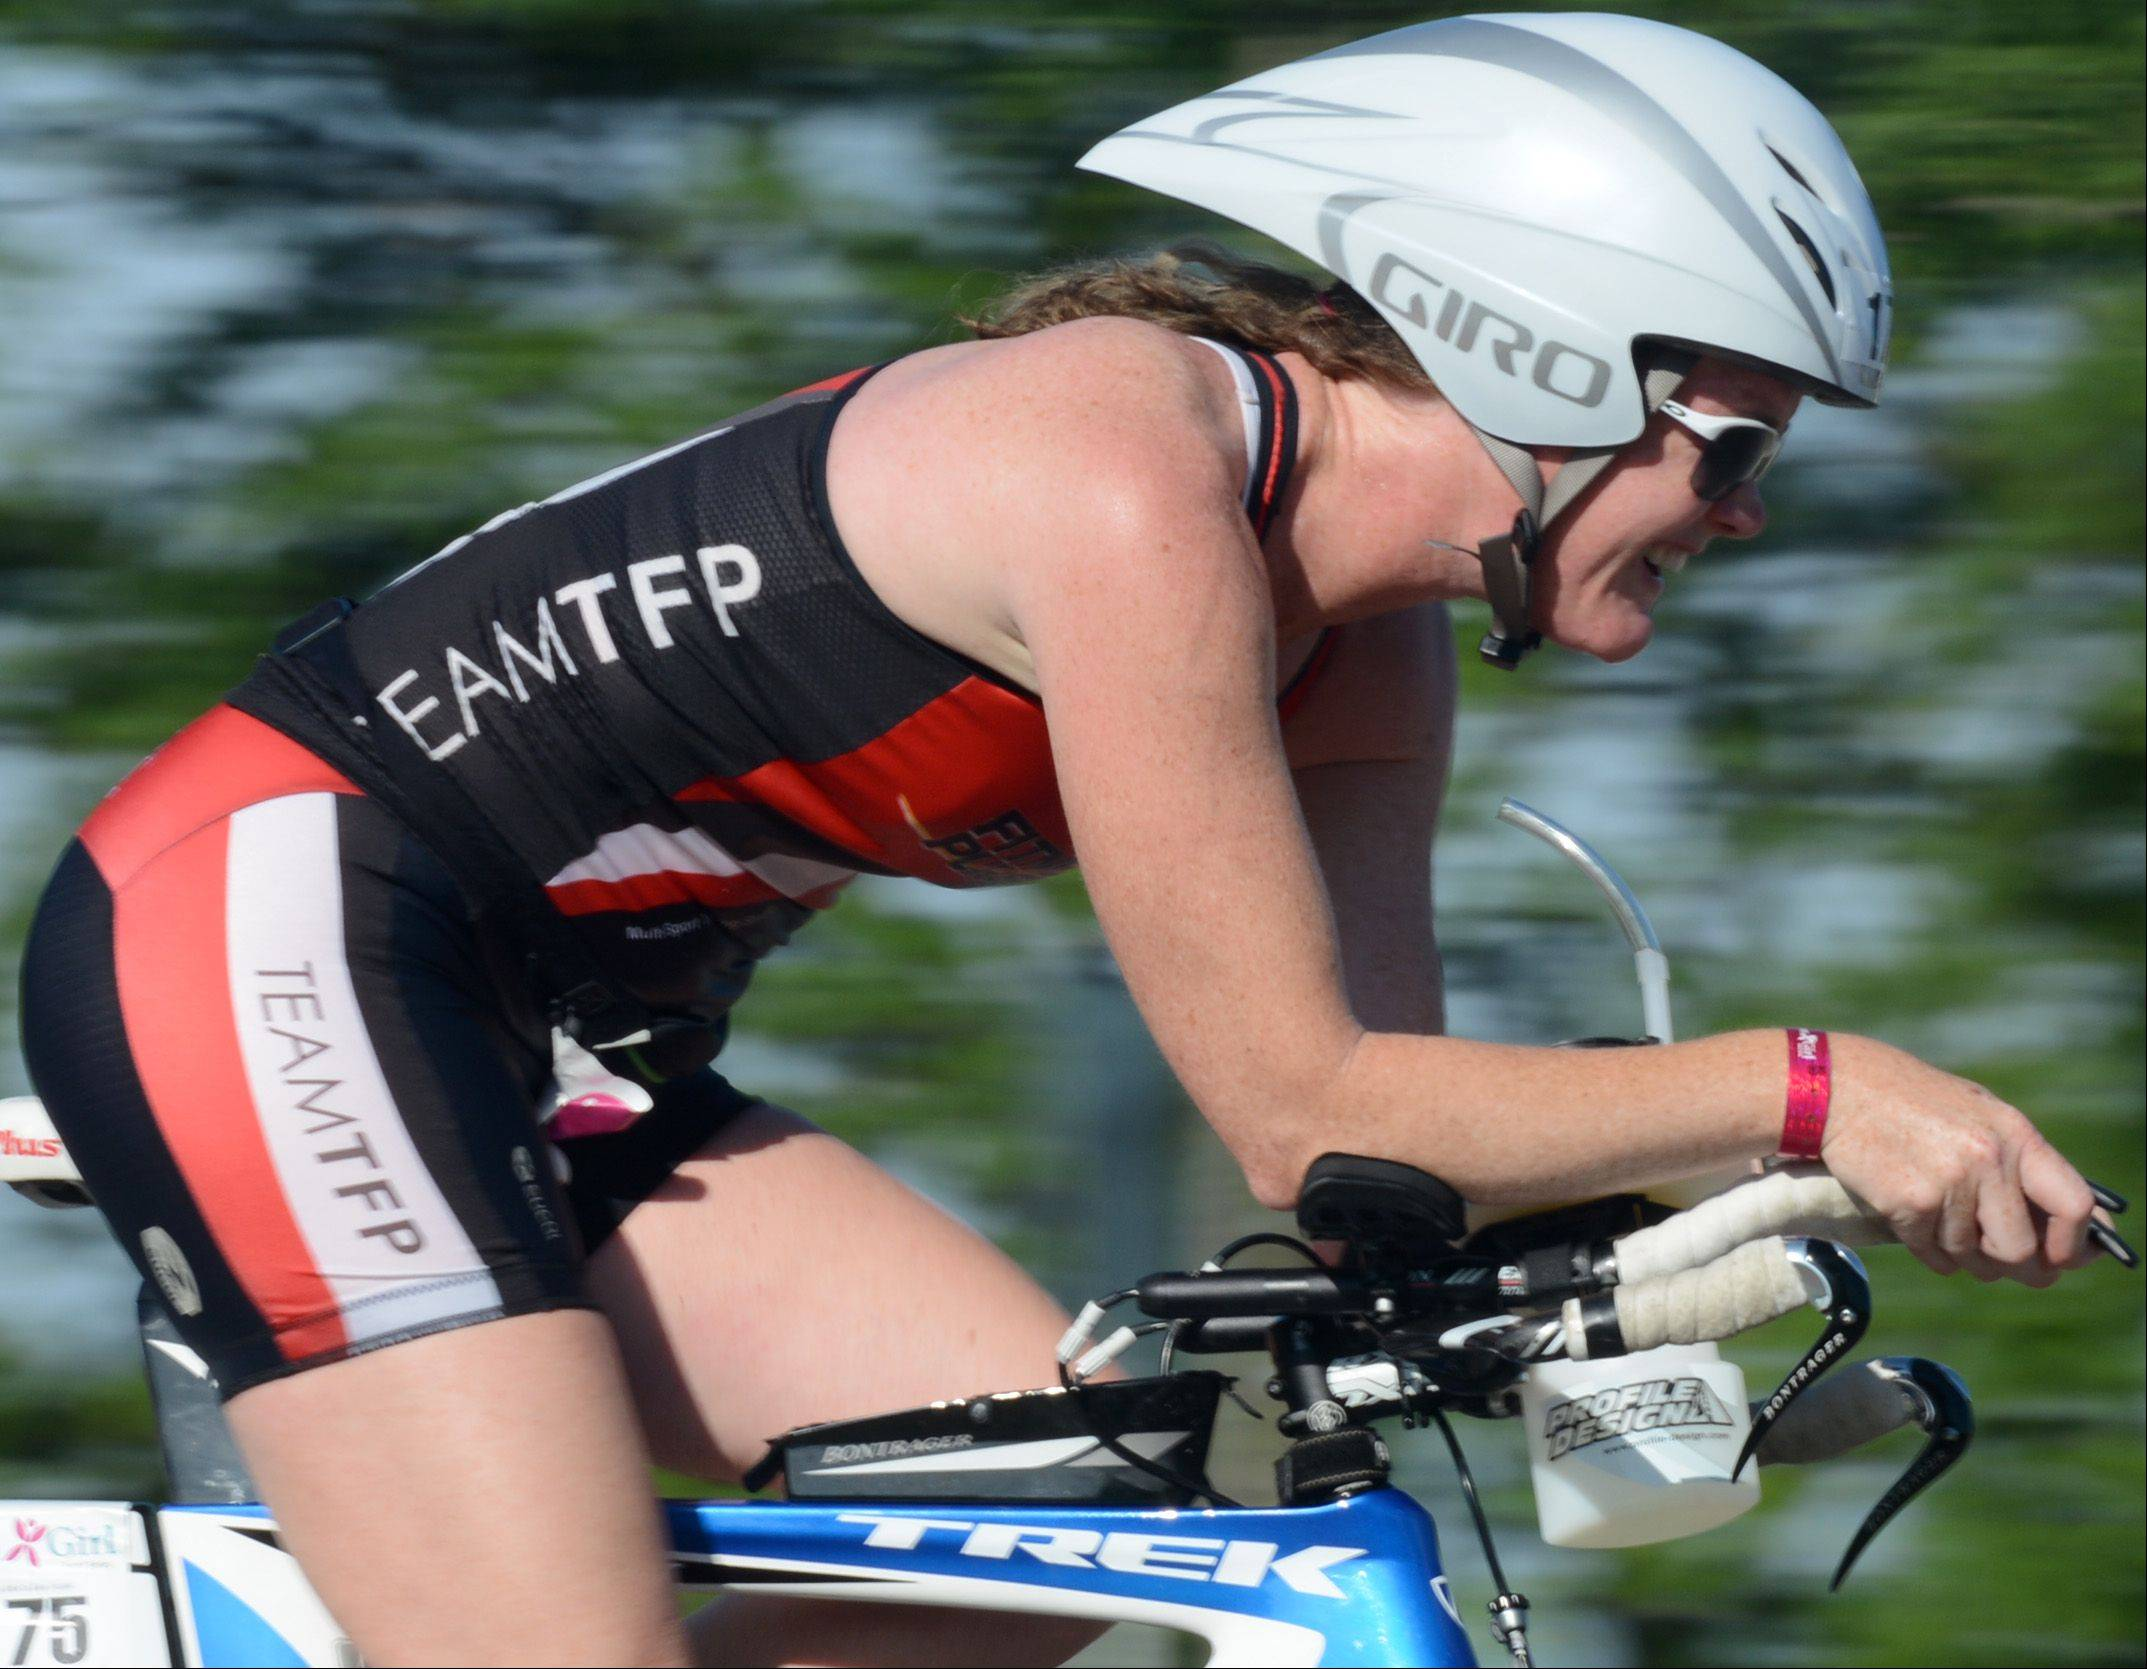 Andrea Collins, of Mundelein, competes in the Athleta Iron Girl Triathlon in Lake Zurich Sunday.